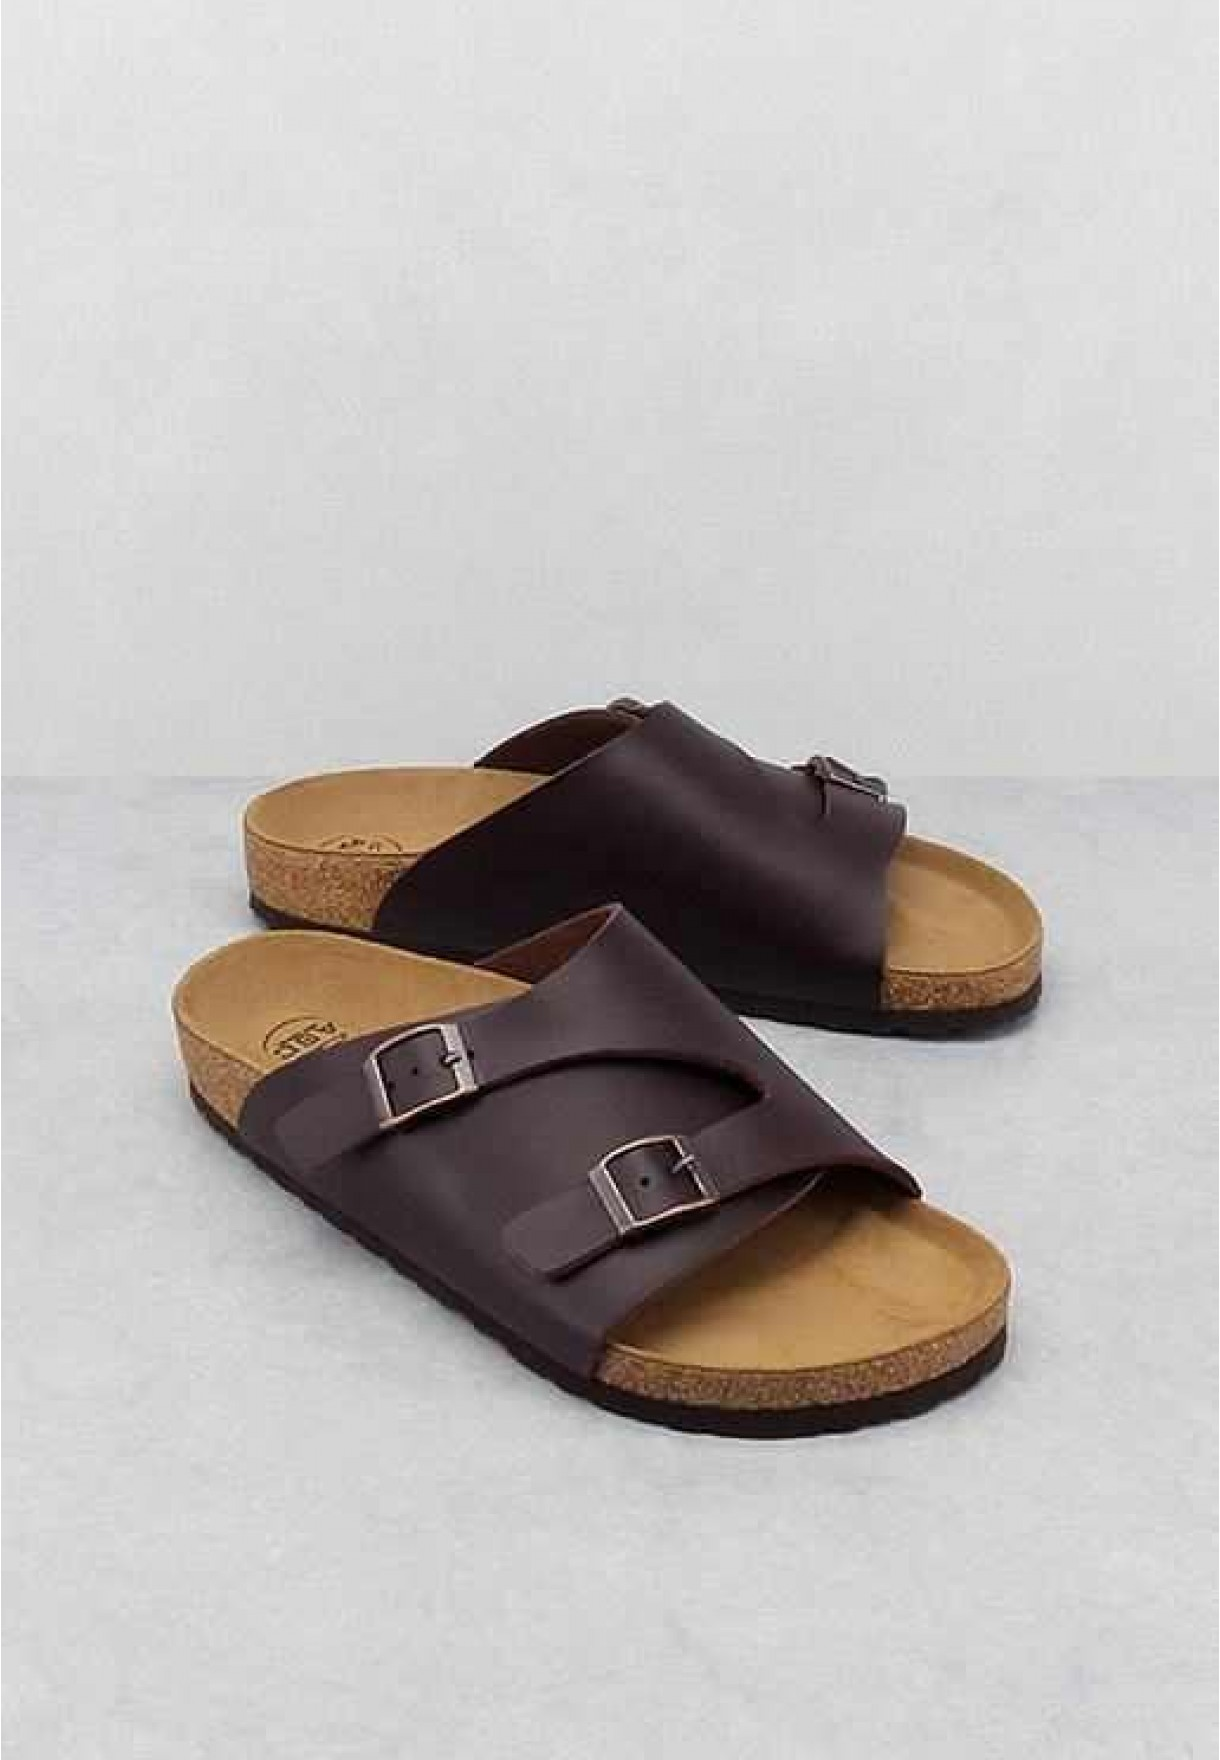 ASC Men's Slipper